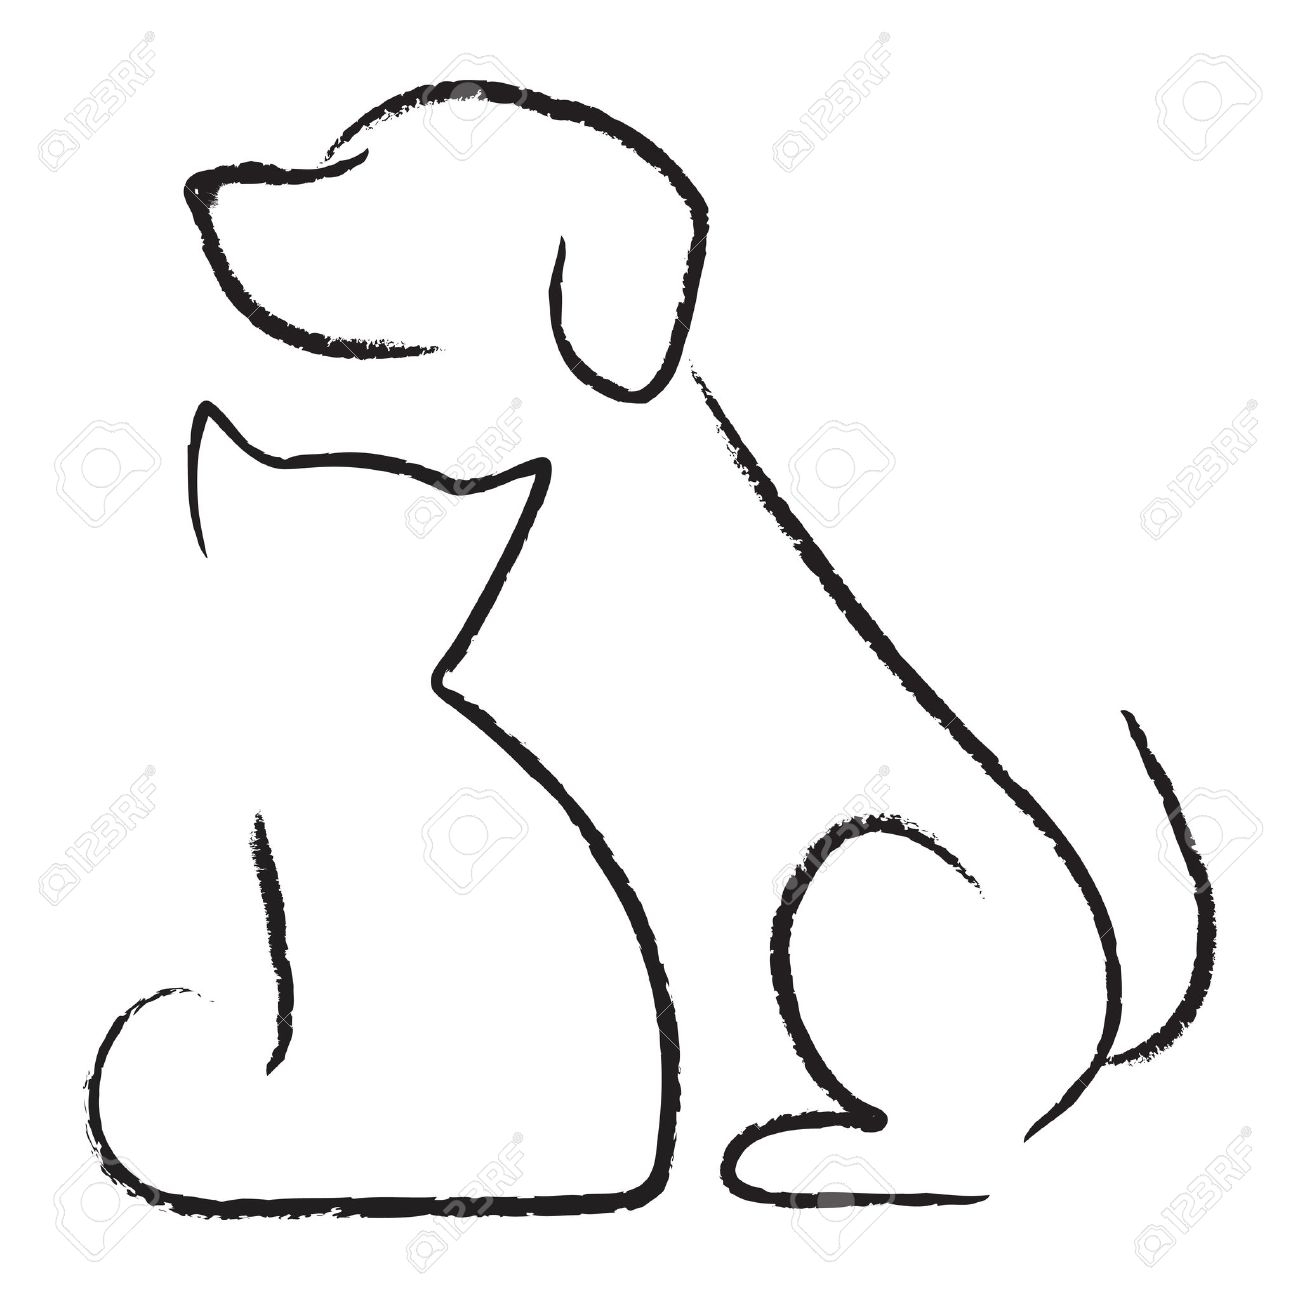 dog cat icon royalty free cliparts vectors and stock illustration rh 123rf com cat and dog clipart black and white cat and dog fight clipart